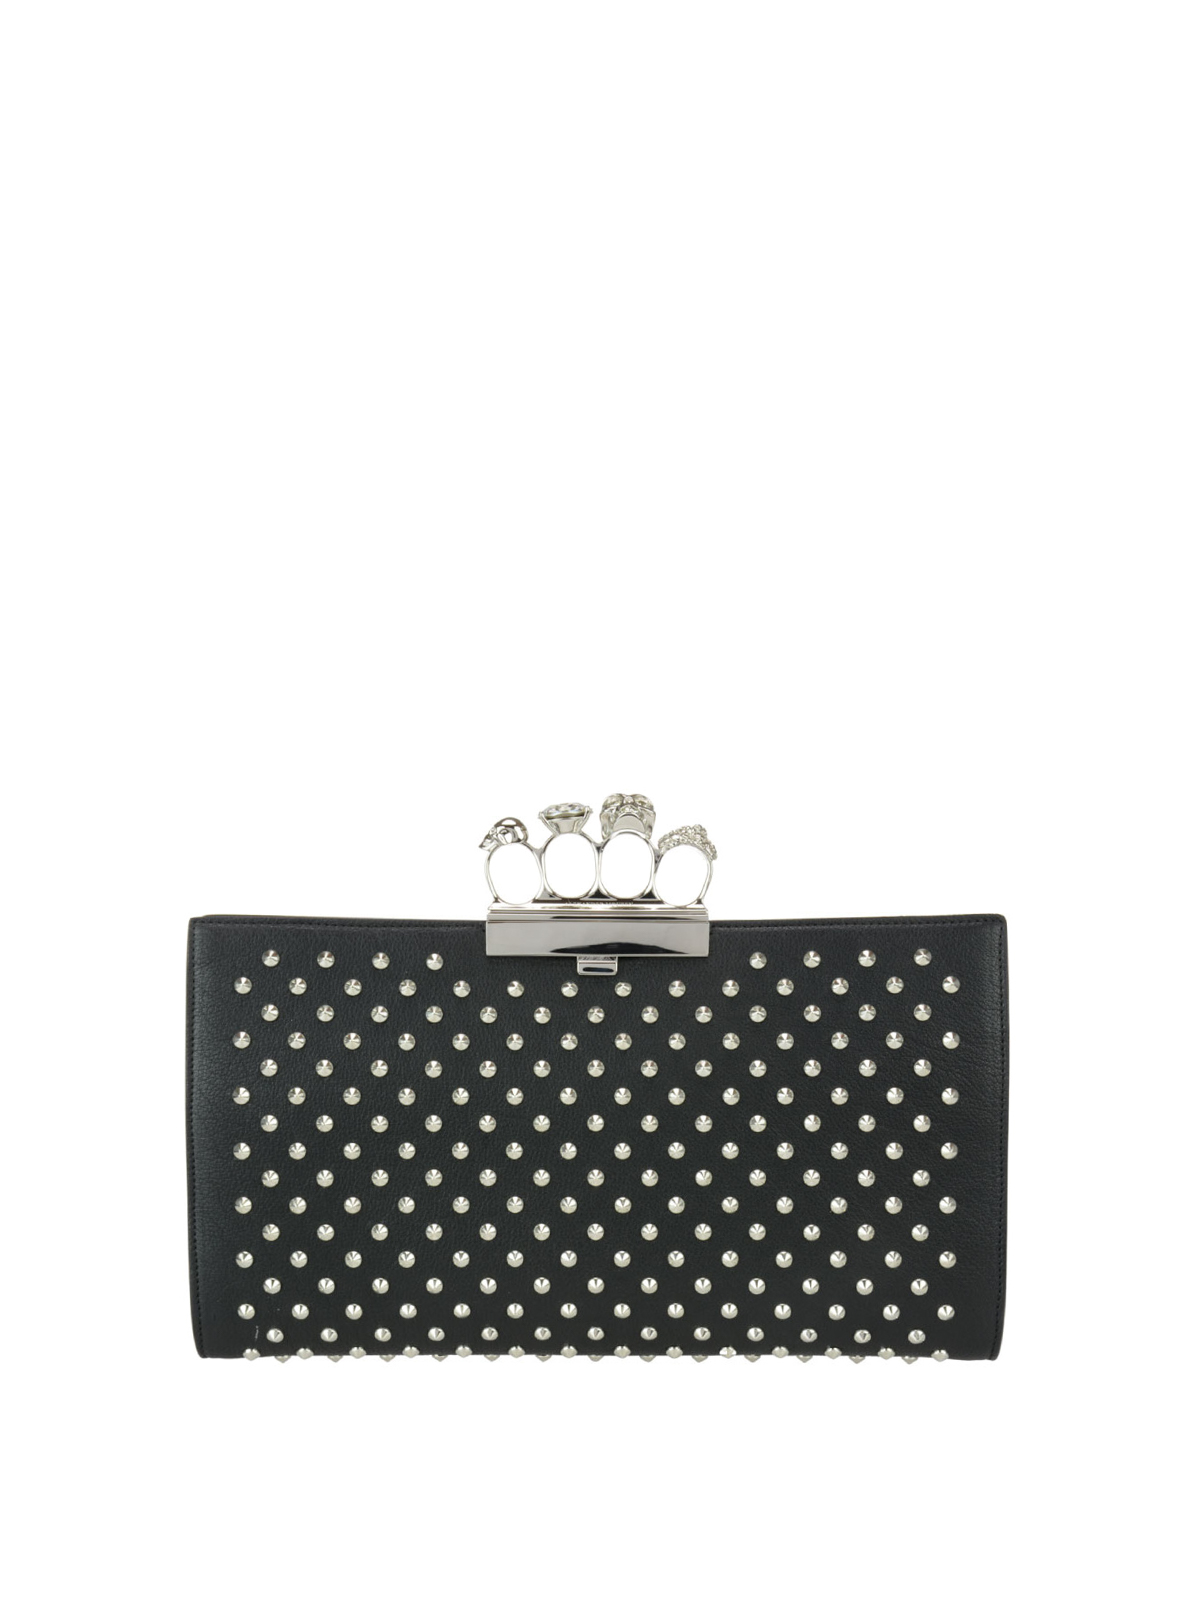 Knuckle clutch by Alexander Mcqueen - clutches | Shop ...